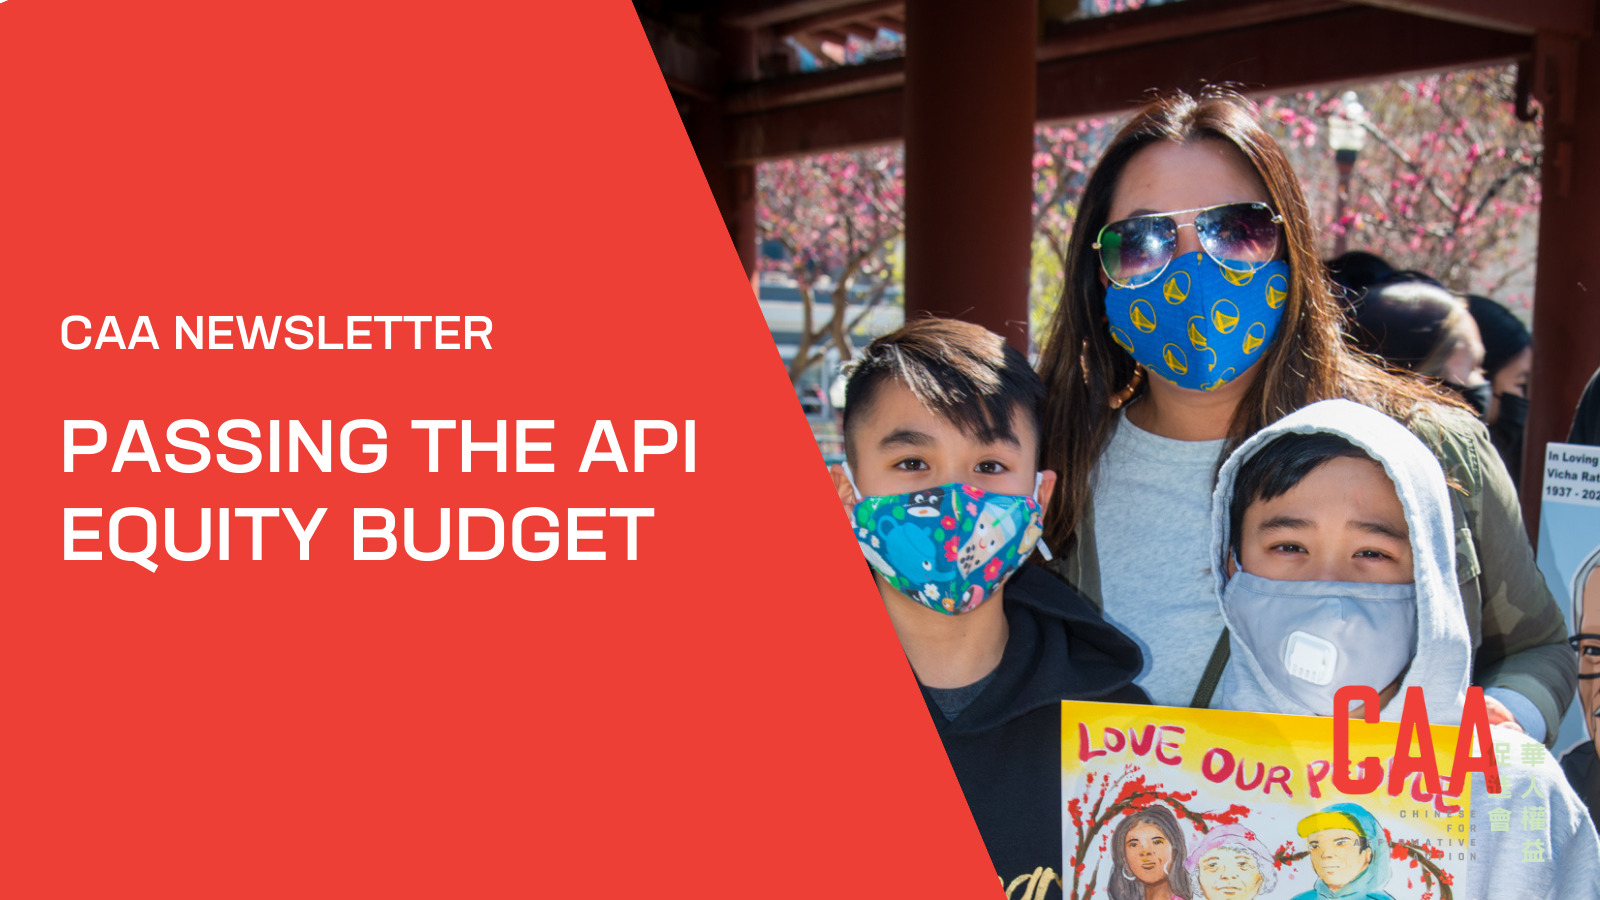 CAA Newsletter: Passing the API Equity Budget